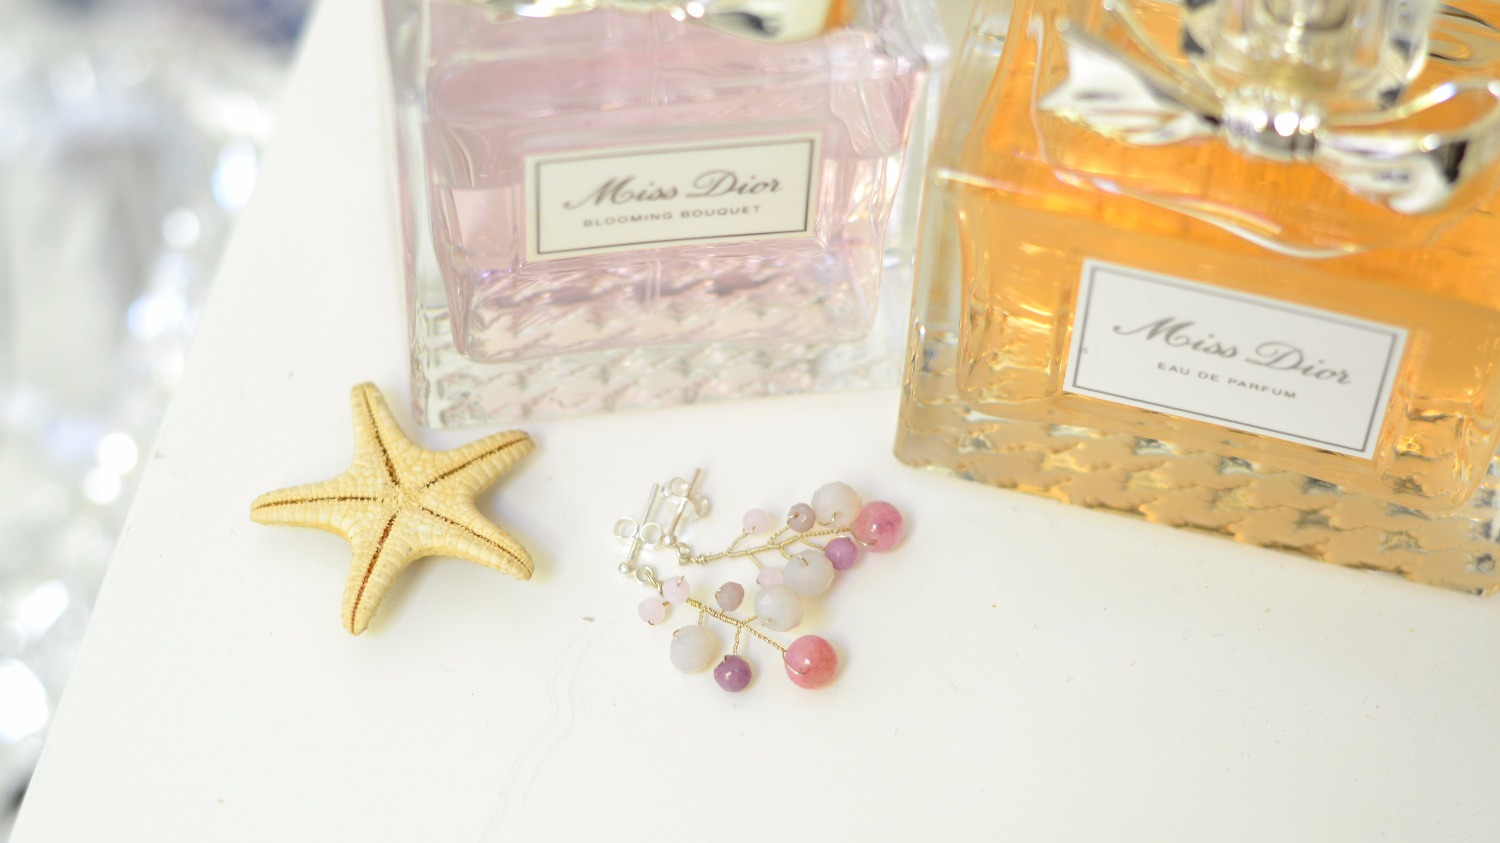 Earings Miss Dior